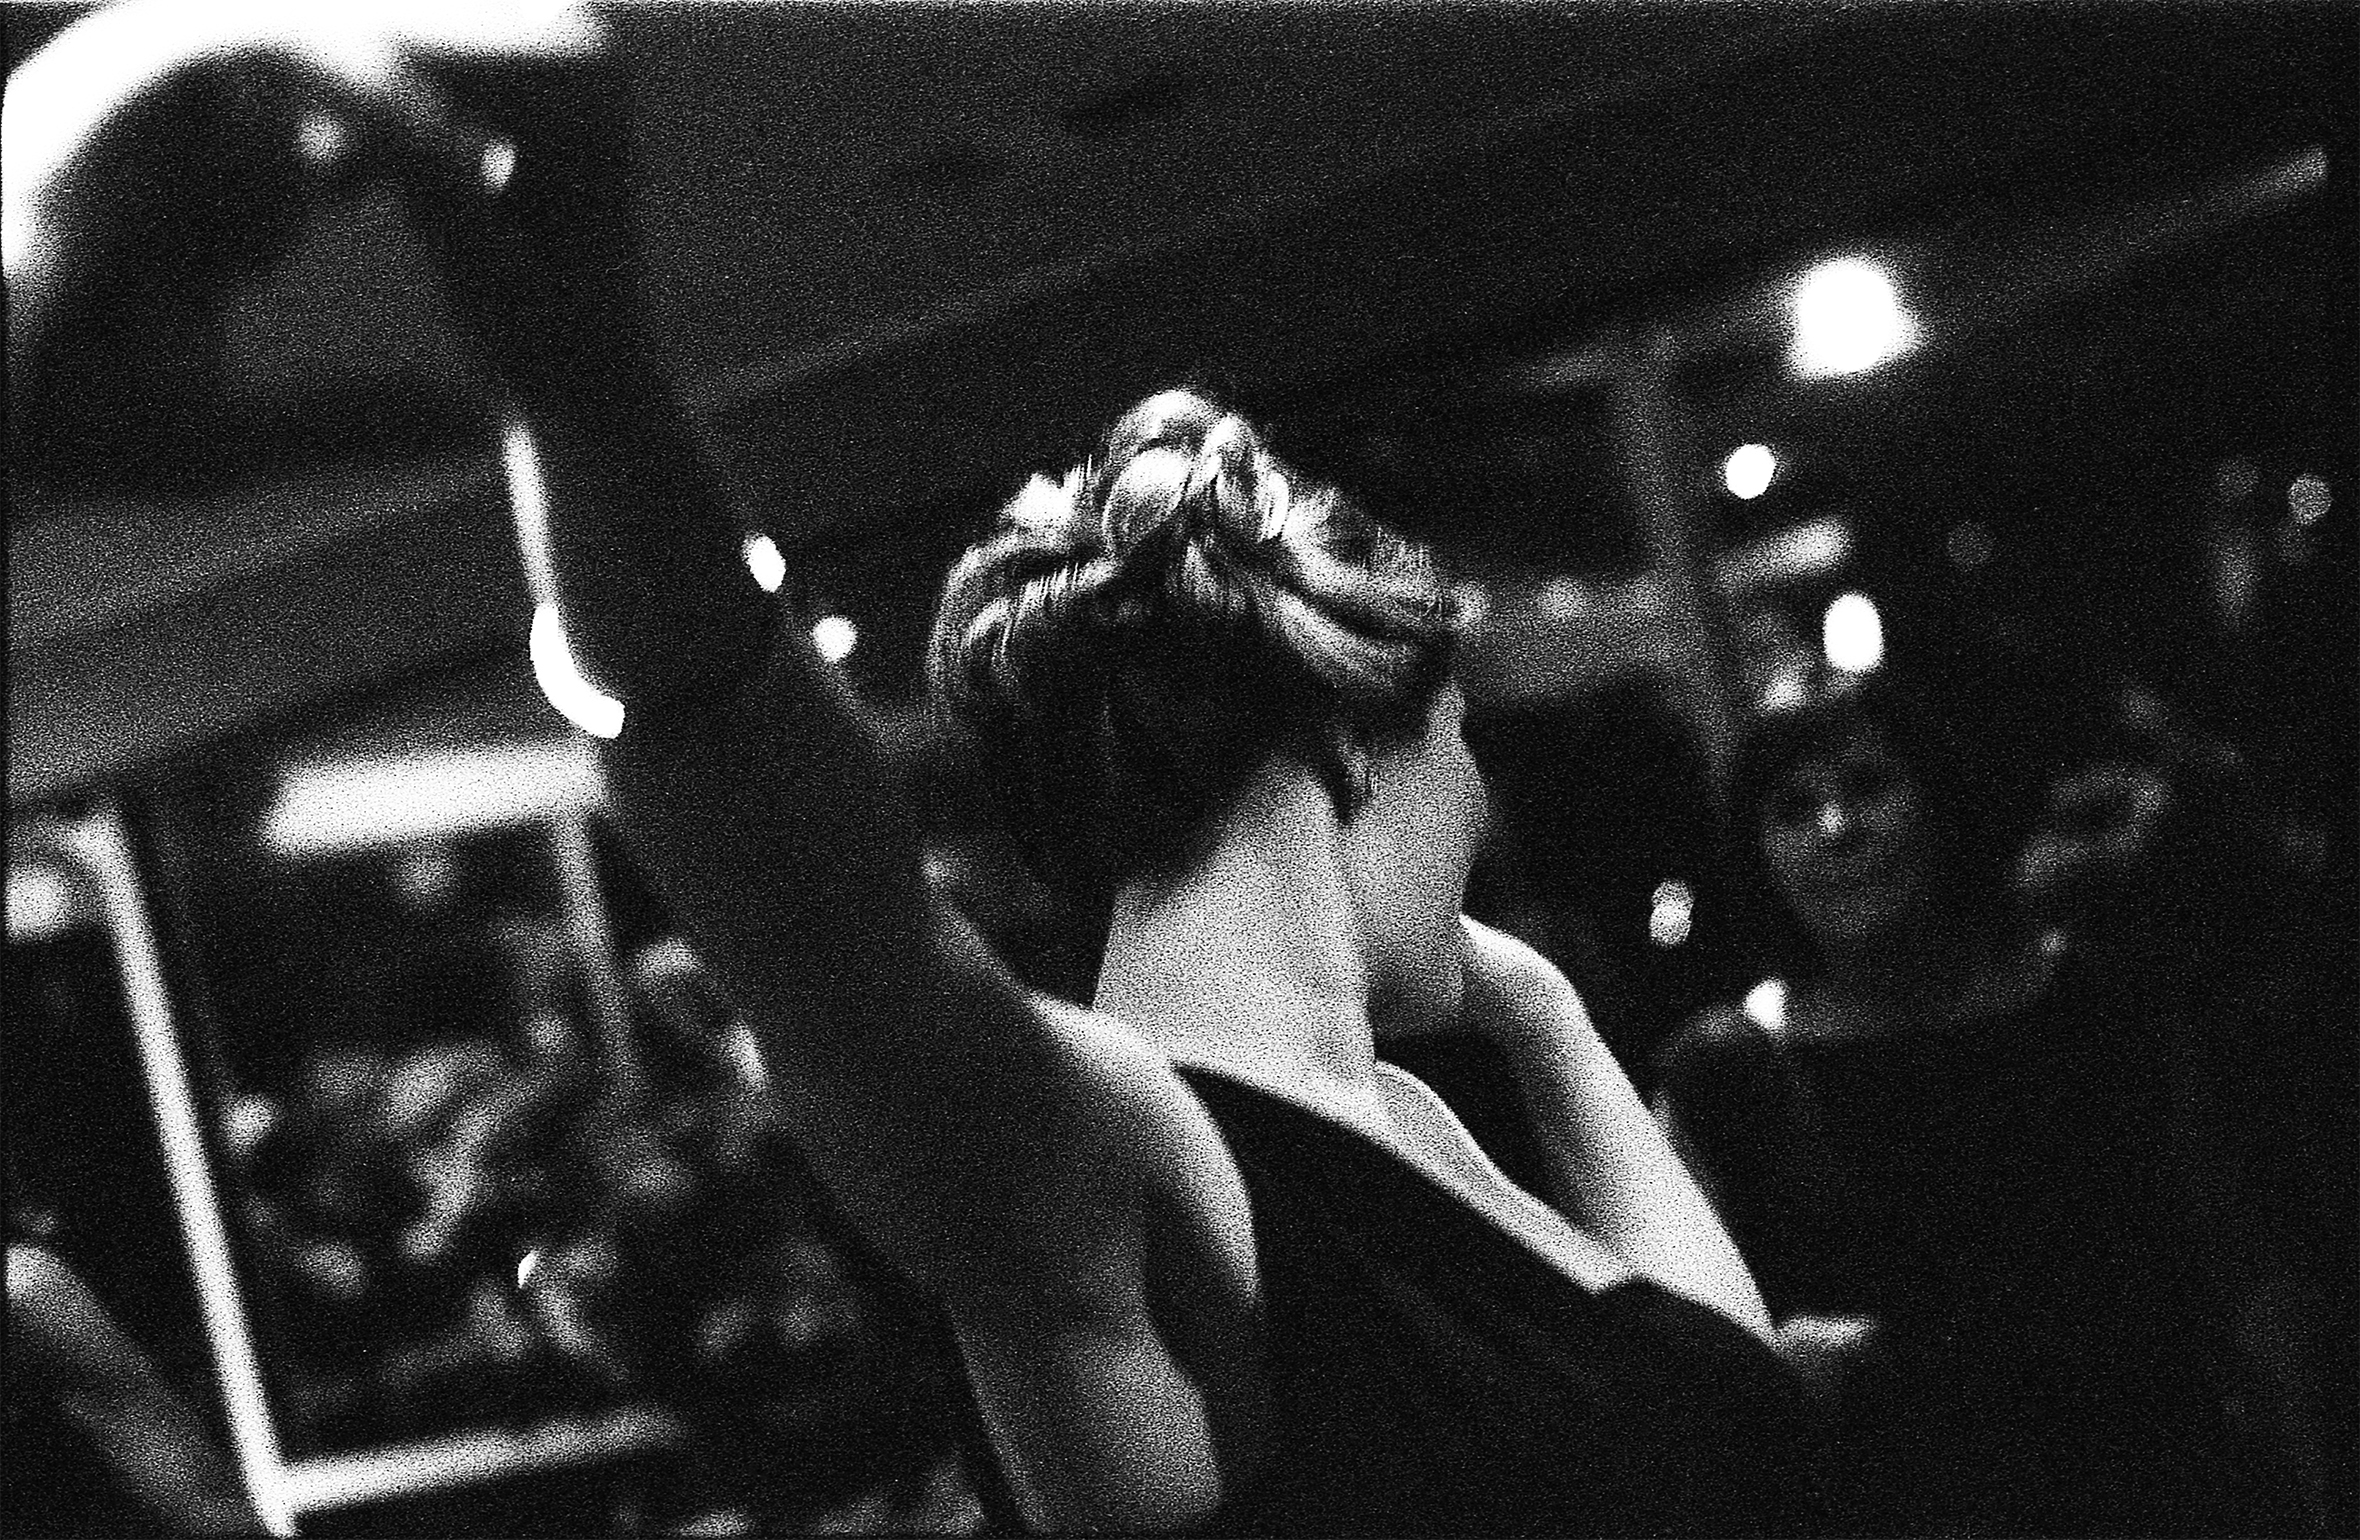 A woman with an elegant, updo hairstyle is facing away from the camera. She appears to be dancing in a darkened room. The shadows of people can just be seen around the edges.